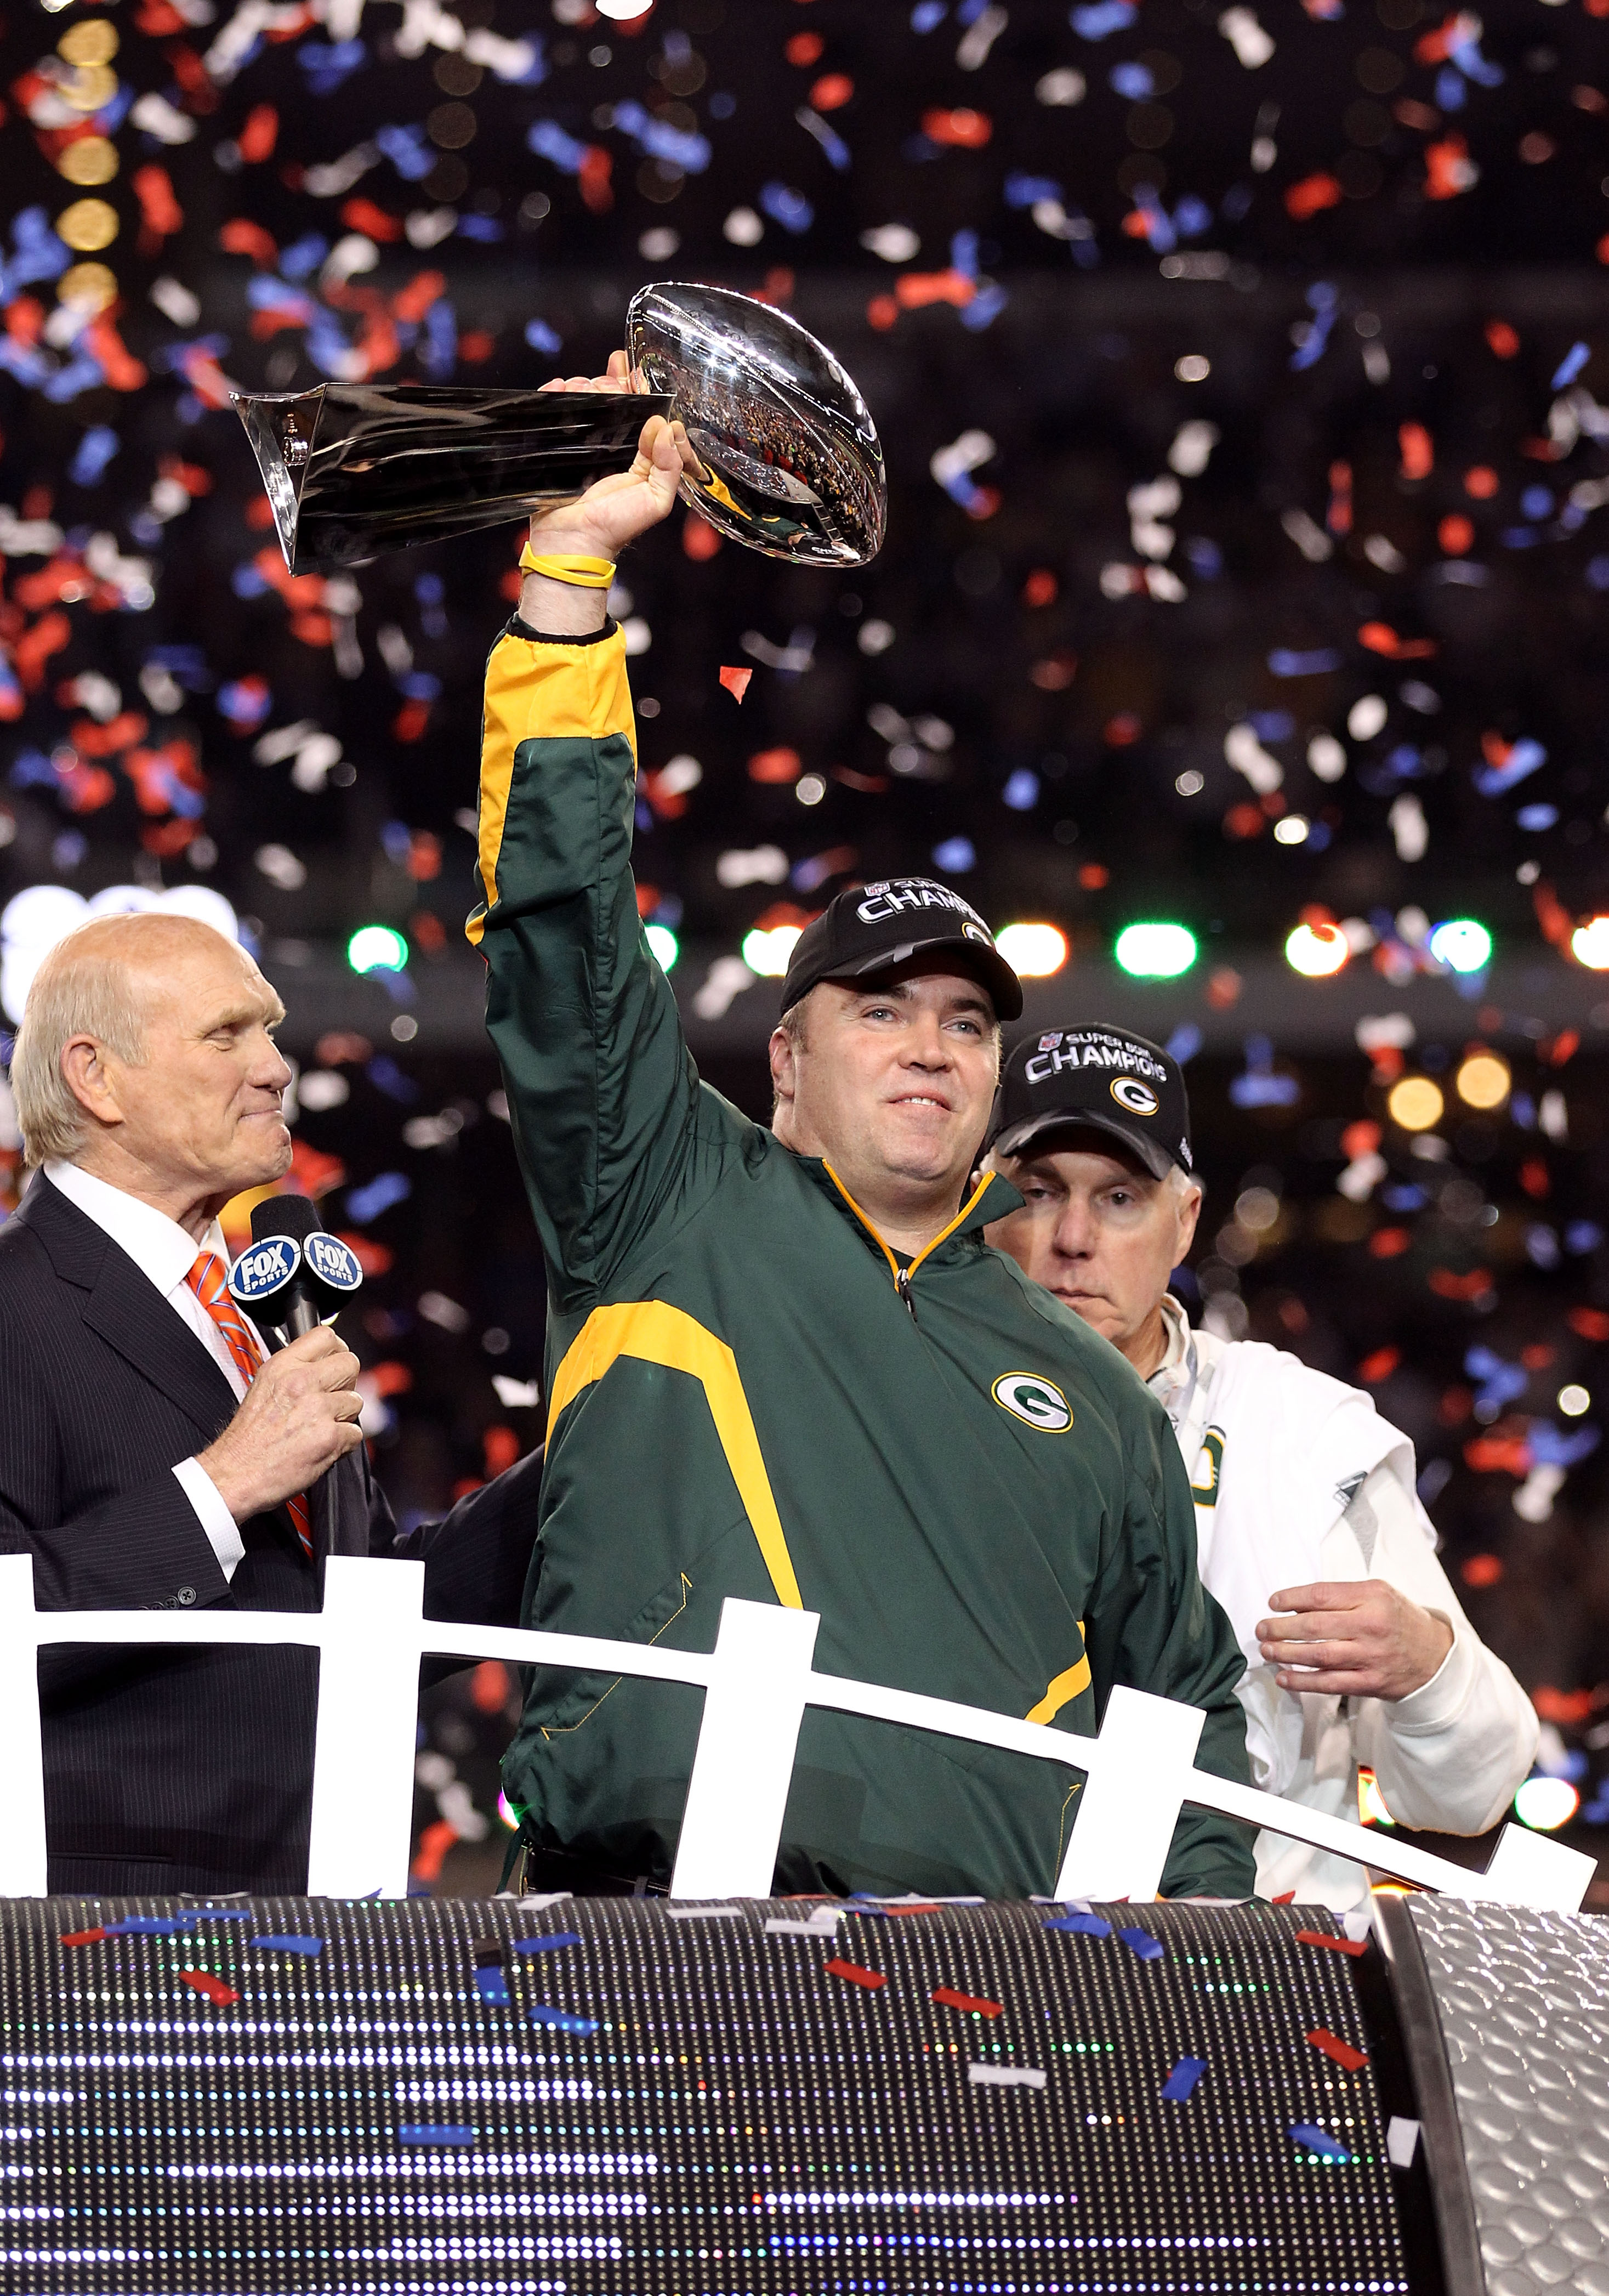 ARLINGTON, TX - FEBRUARY 06:  Head coach Mike McCarthy of the Green Bay Packers celebrates with the Vince Lombardi trophy following the Packers 31-25 win in Super Bowl XLV at Cowboys Stadium on February 6, 2011 in Arlington, Texas.  (Photo by Al Bello/Get